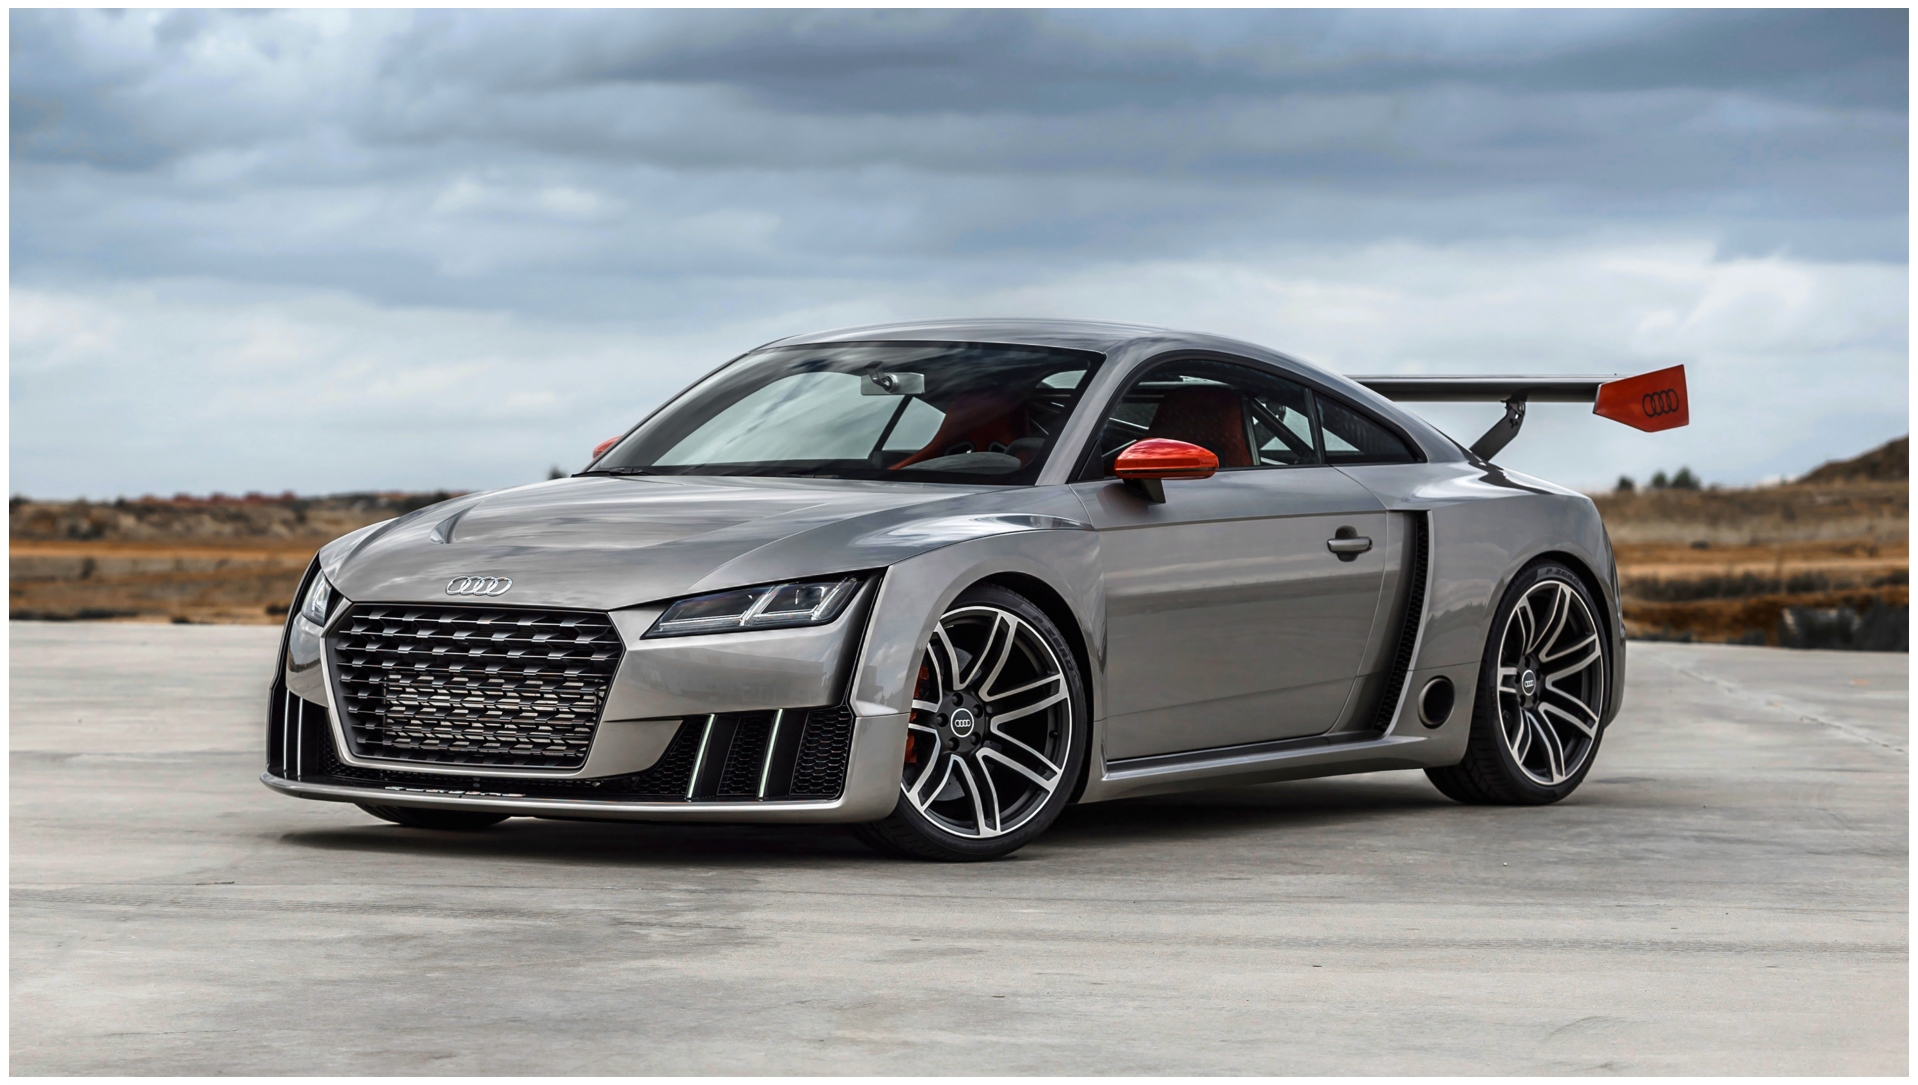 New Audi Cars 2019 Hd Wallpapers Hd Wallpapers